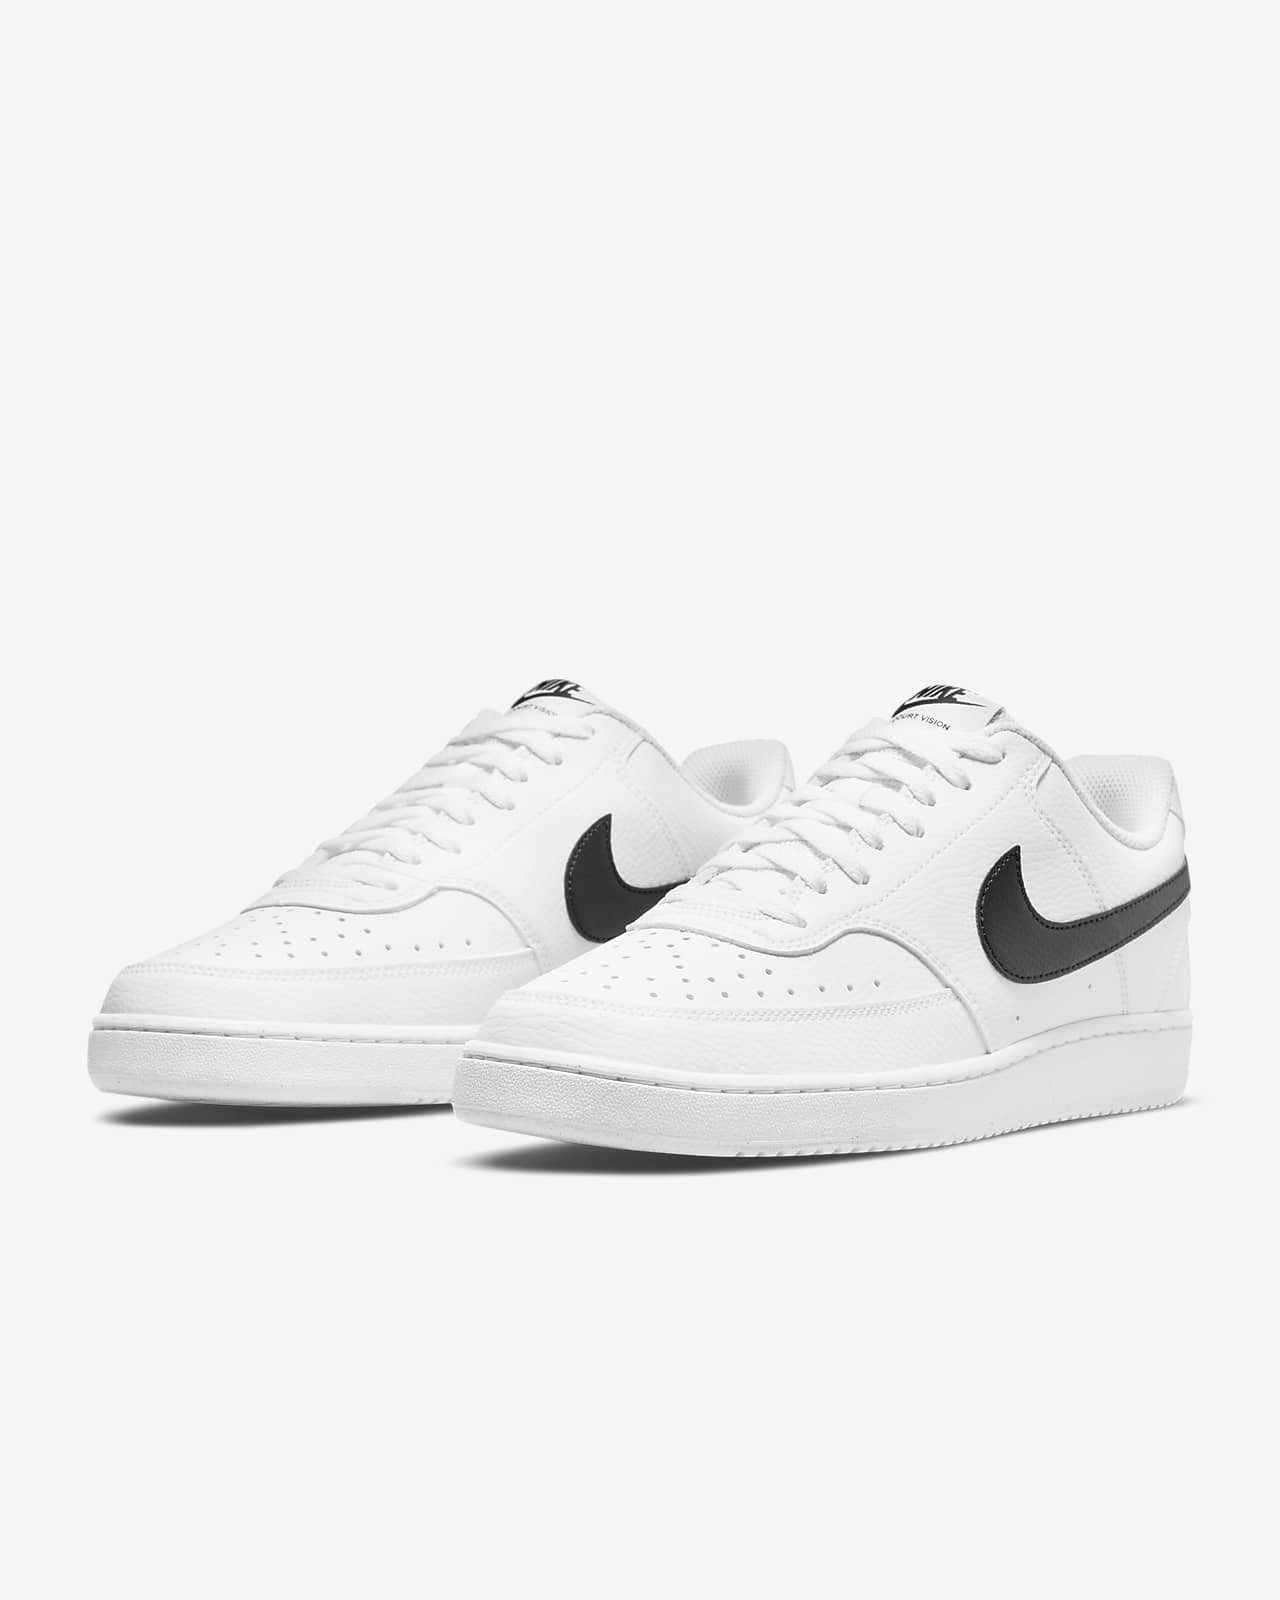 Chaussures Nike Court Vision Low Next Nature pour Homme. Nike LU